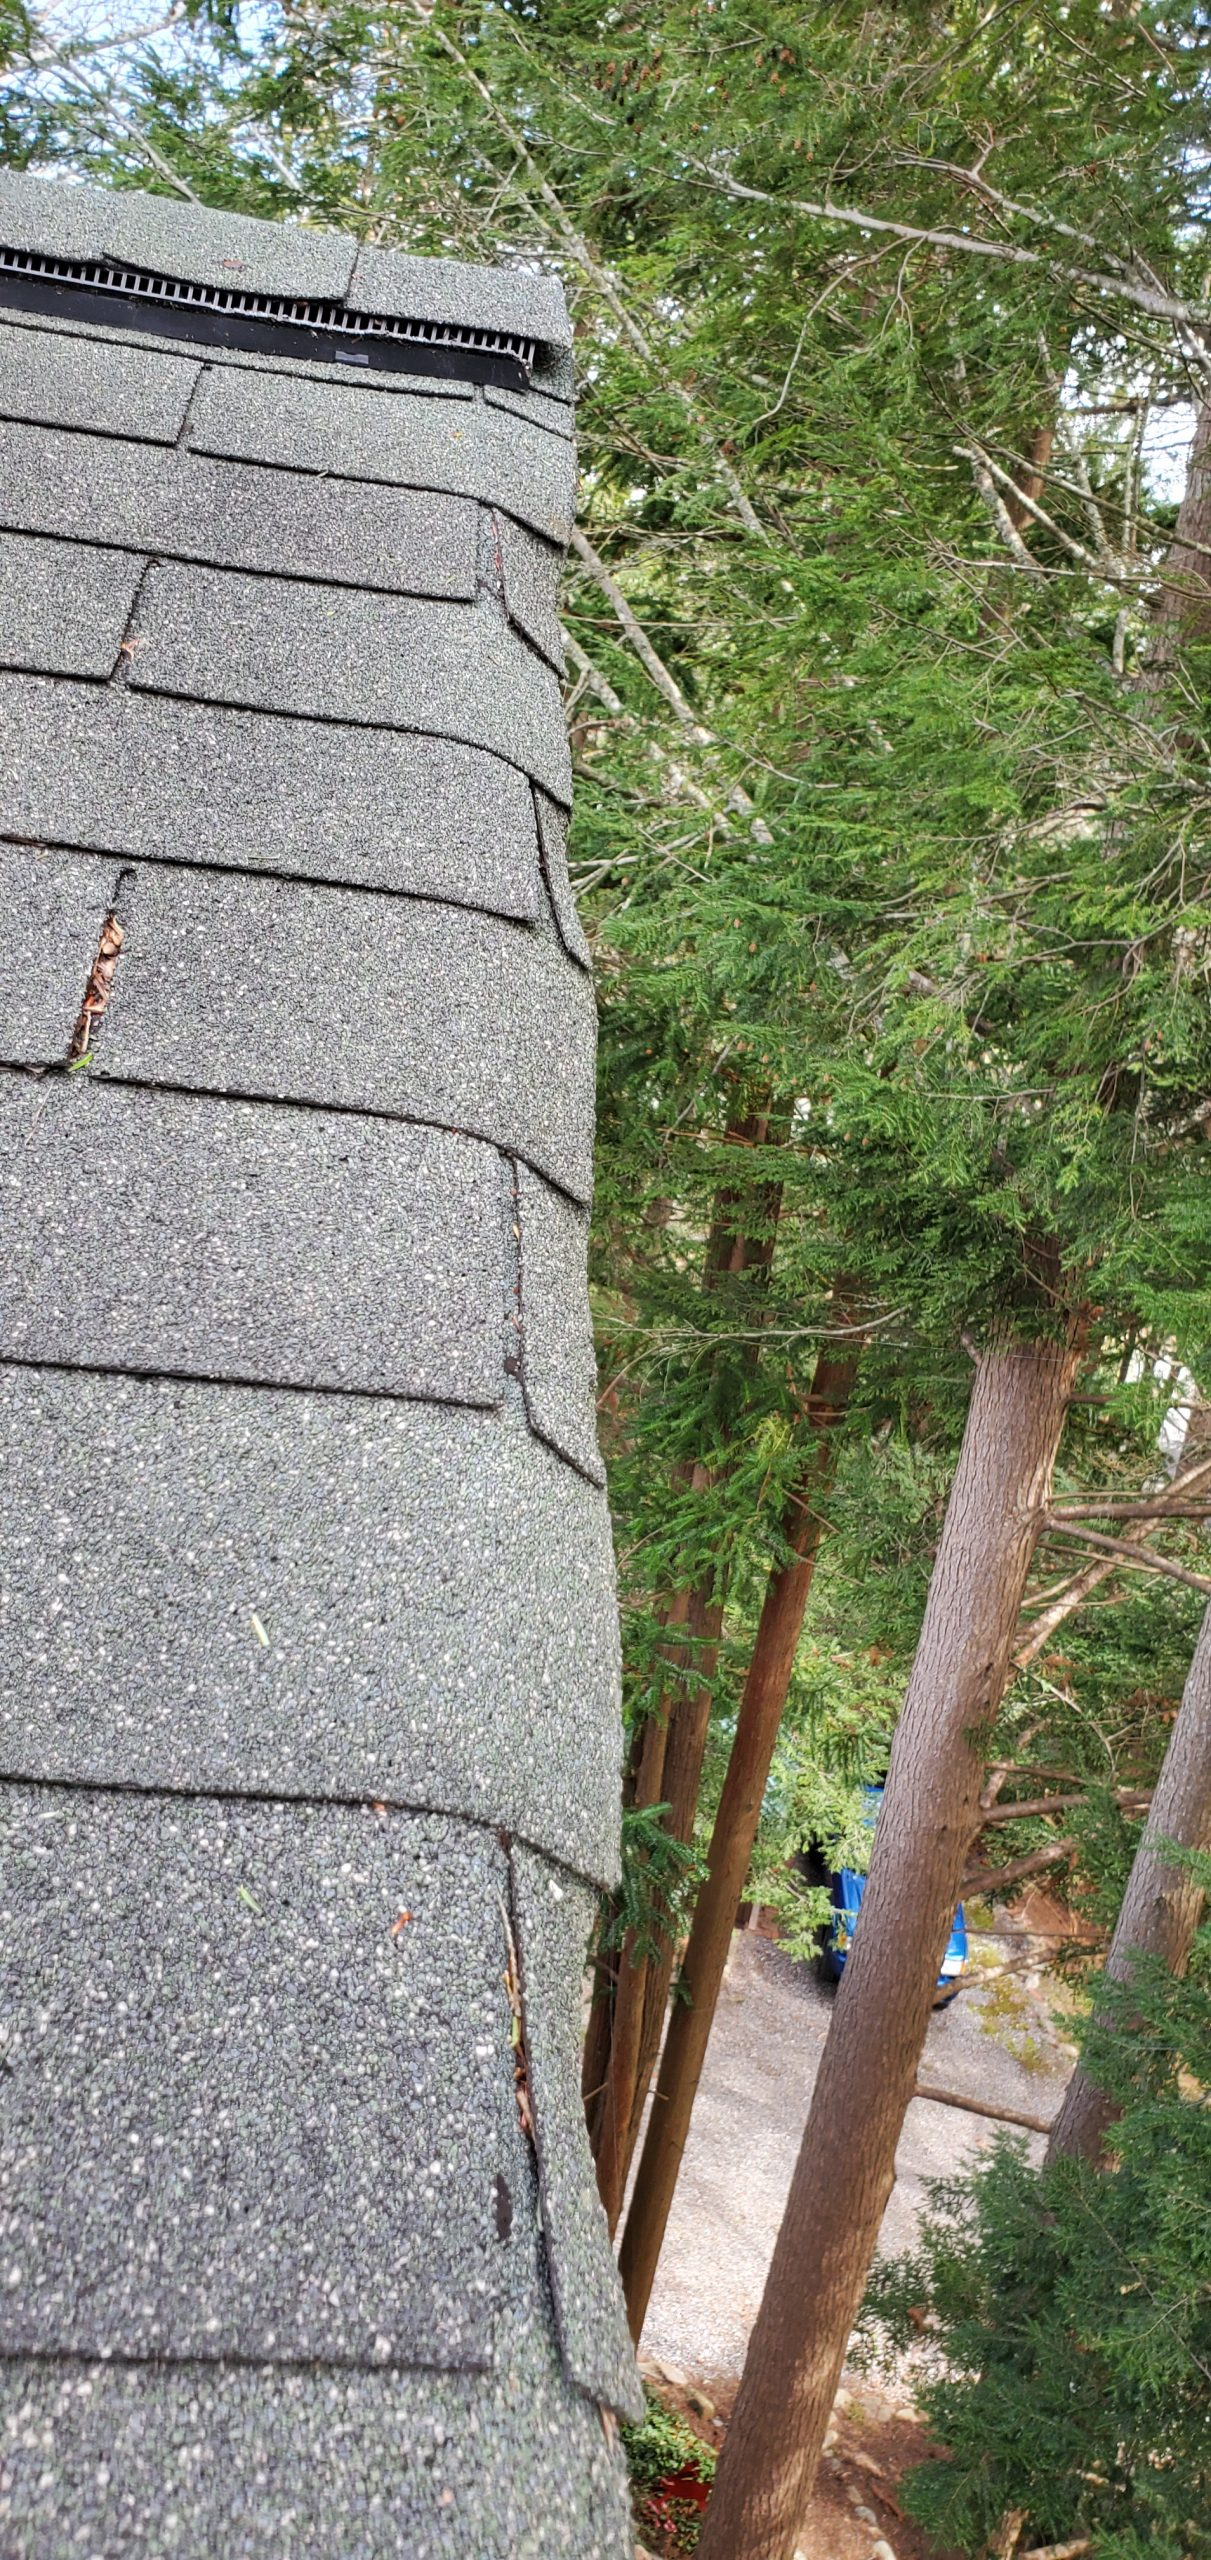 Shingles are holding water